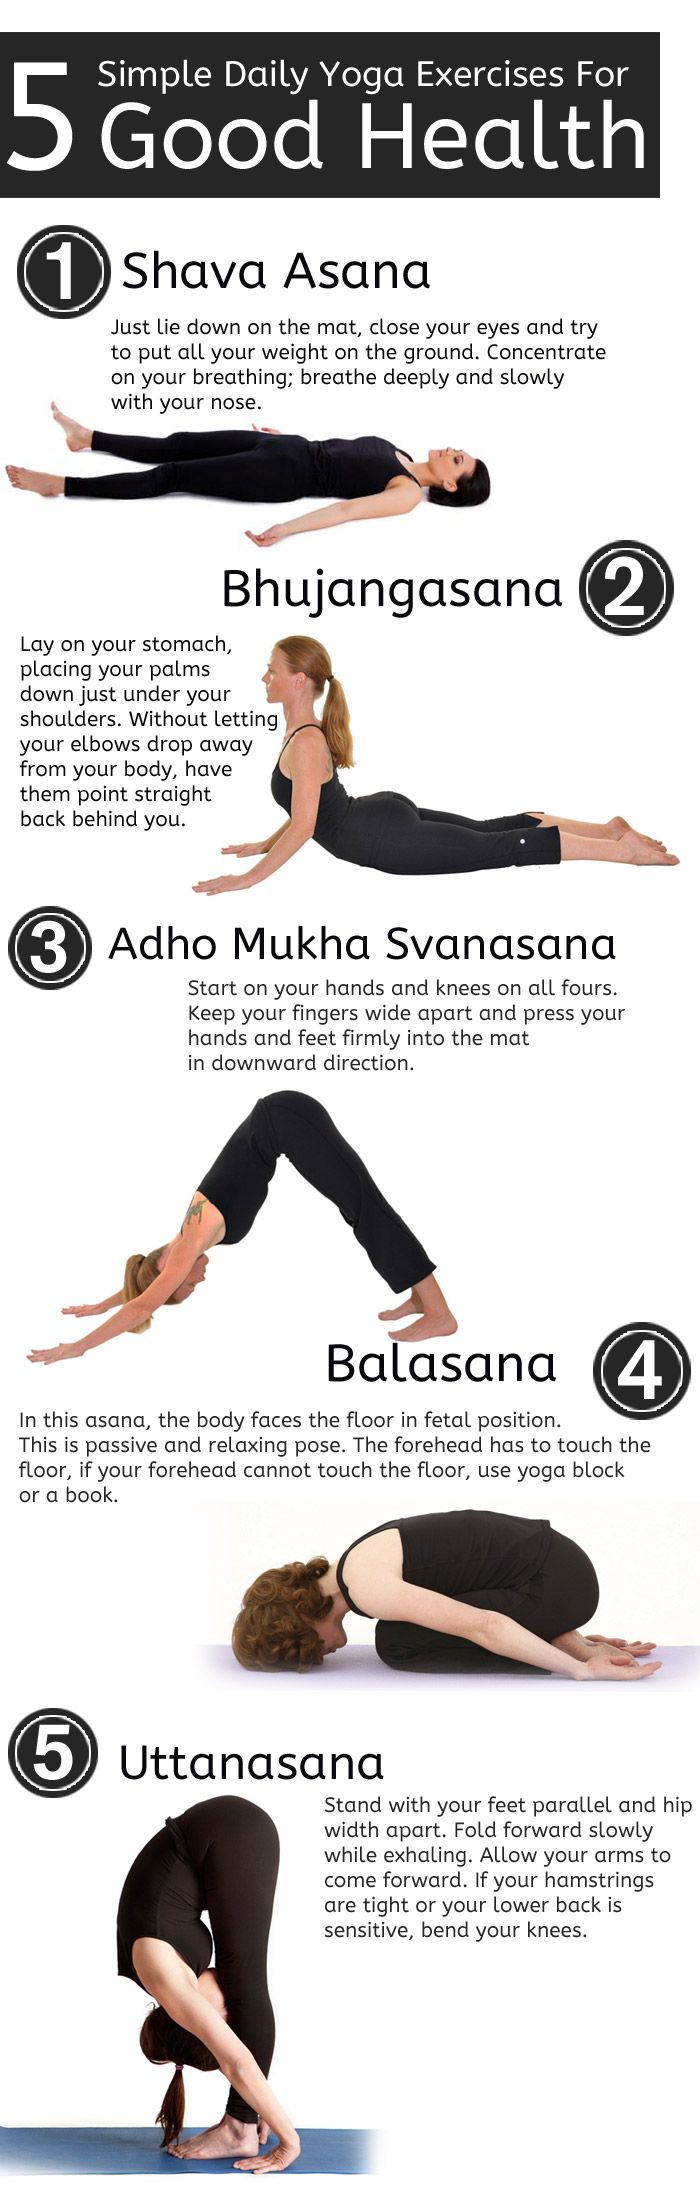 5 simple and essential beginner s yoga poses for good health daily yoga yoga and exercises. Black Bedroom Furniture Sets. Home Design Ideas